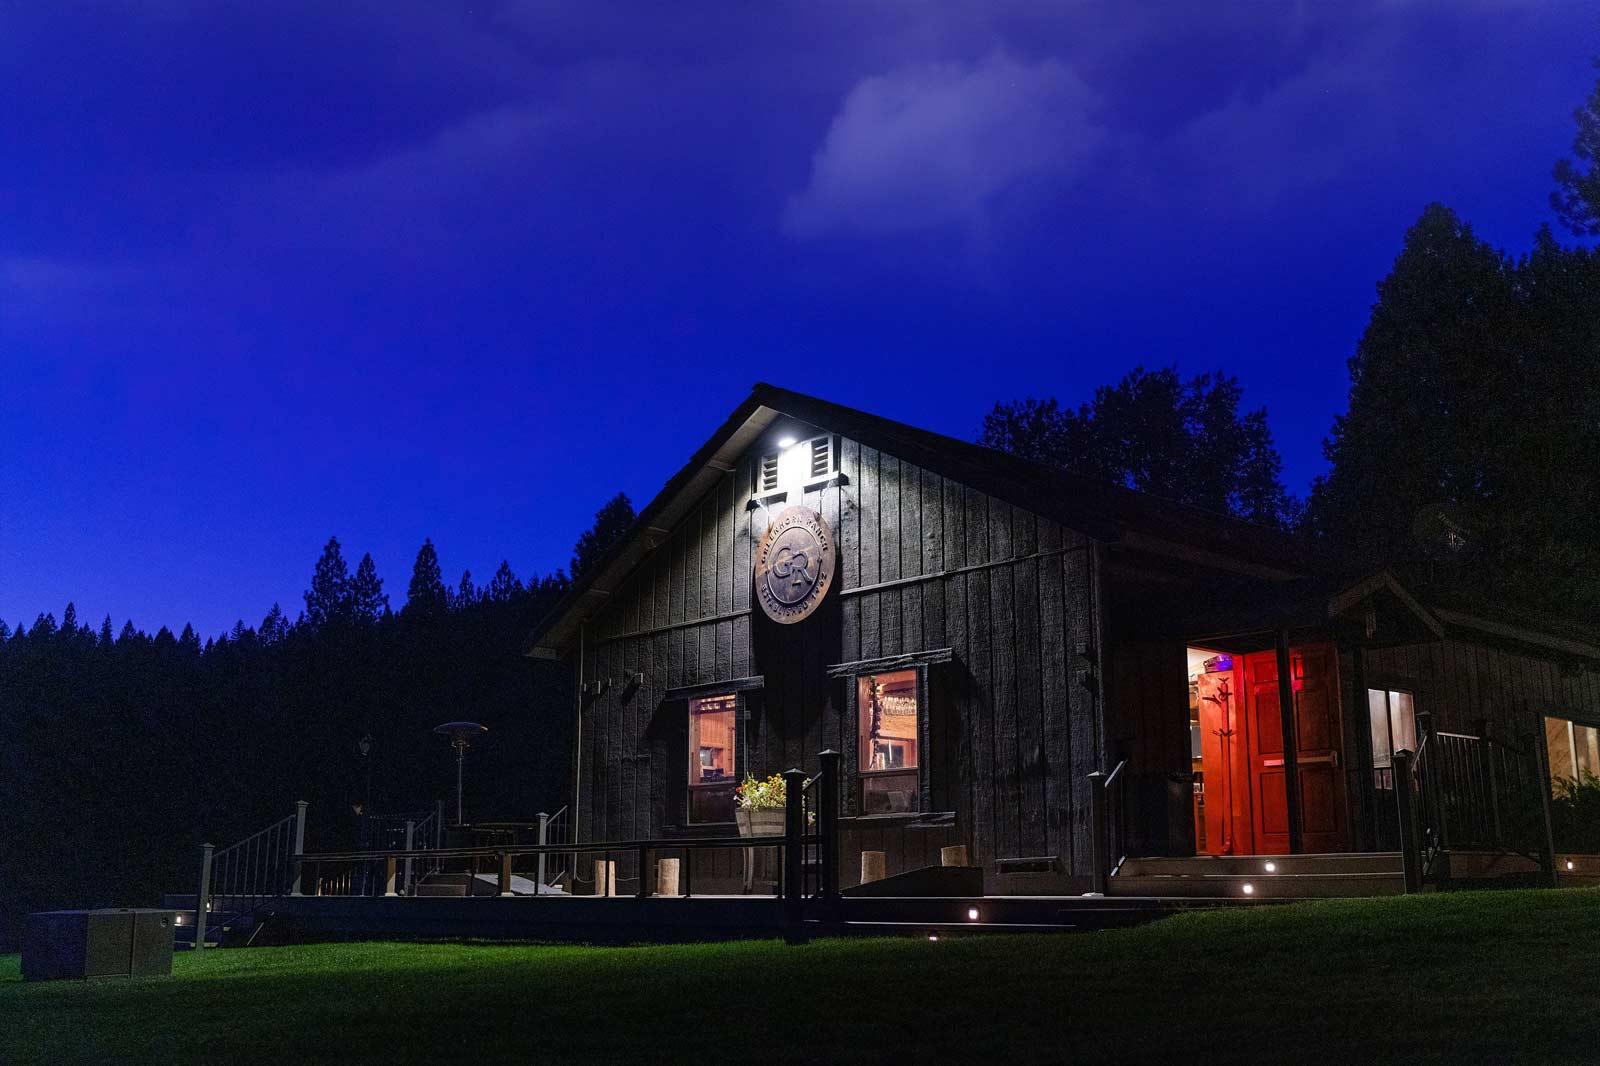 The Greenhorn Dining Hall & Saloon under the night sky